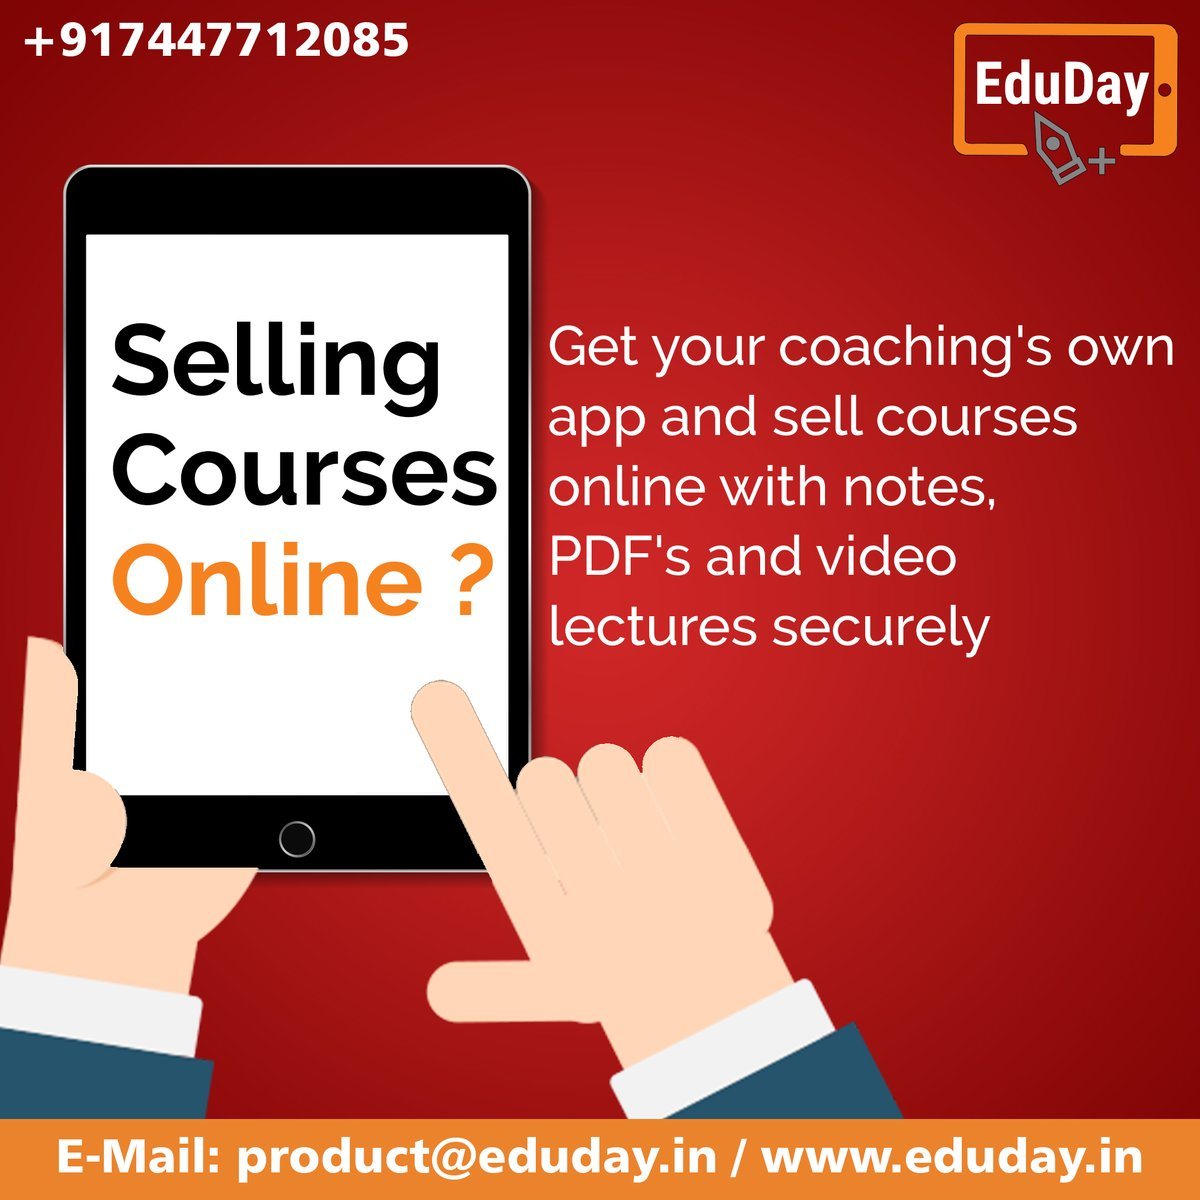 Transform Teaching, Inspire Learning and Deliver a world-class Student Experience.  Get in touch to know more:- Phone : +91 7447712085 E-Mail: product@eduday.in visit:- http://www.eduday.in  #eduday #edudayindia #pune #india #tab #tablets #CoachingInstitute #Coachingclassesspic.twitter.com/WySDp373vu